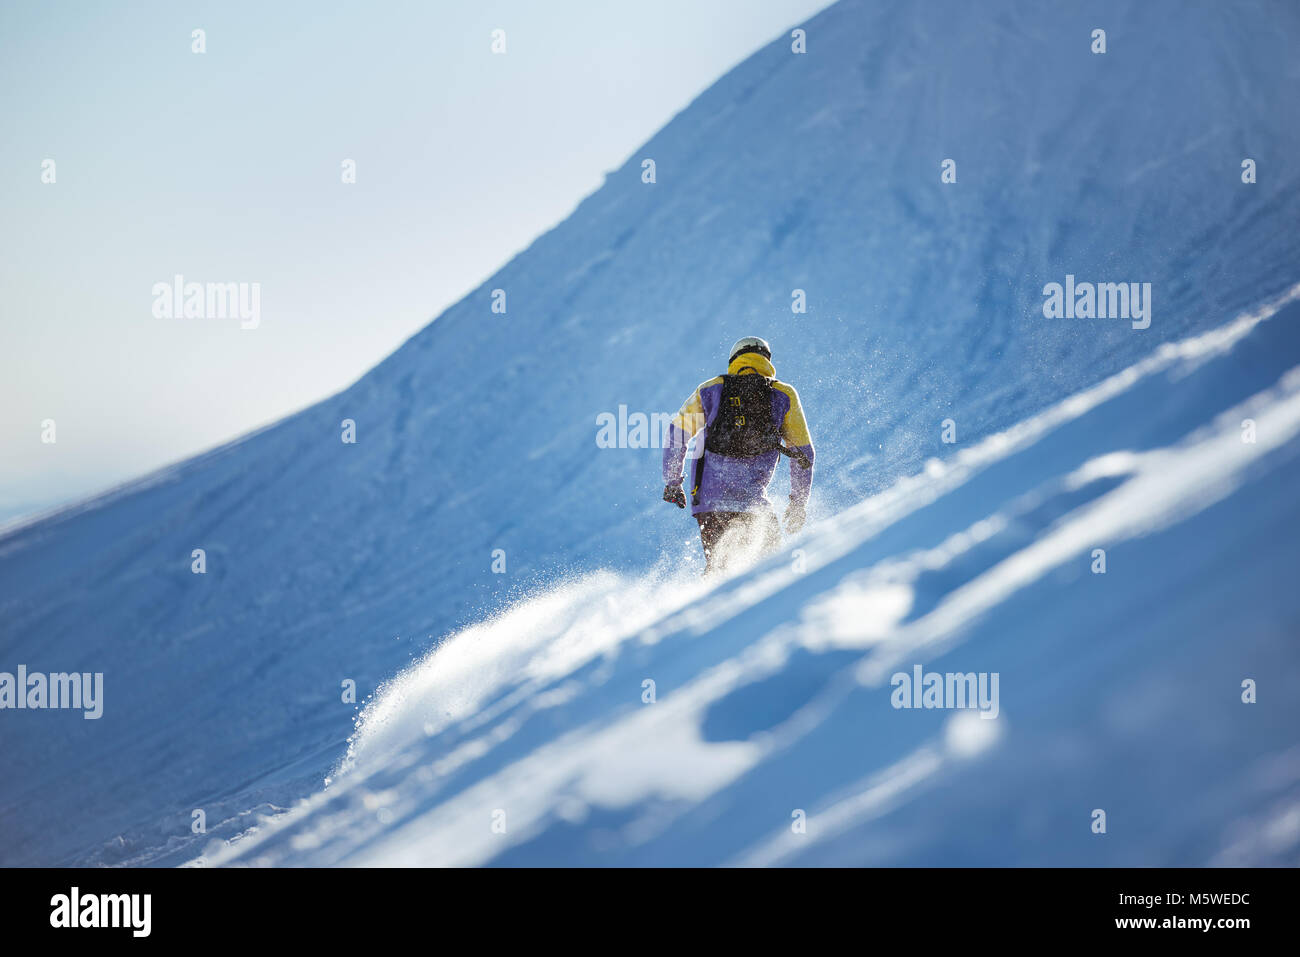 Snowboarding concept with offpiste backcountry snowboarder or skier - Stock Image